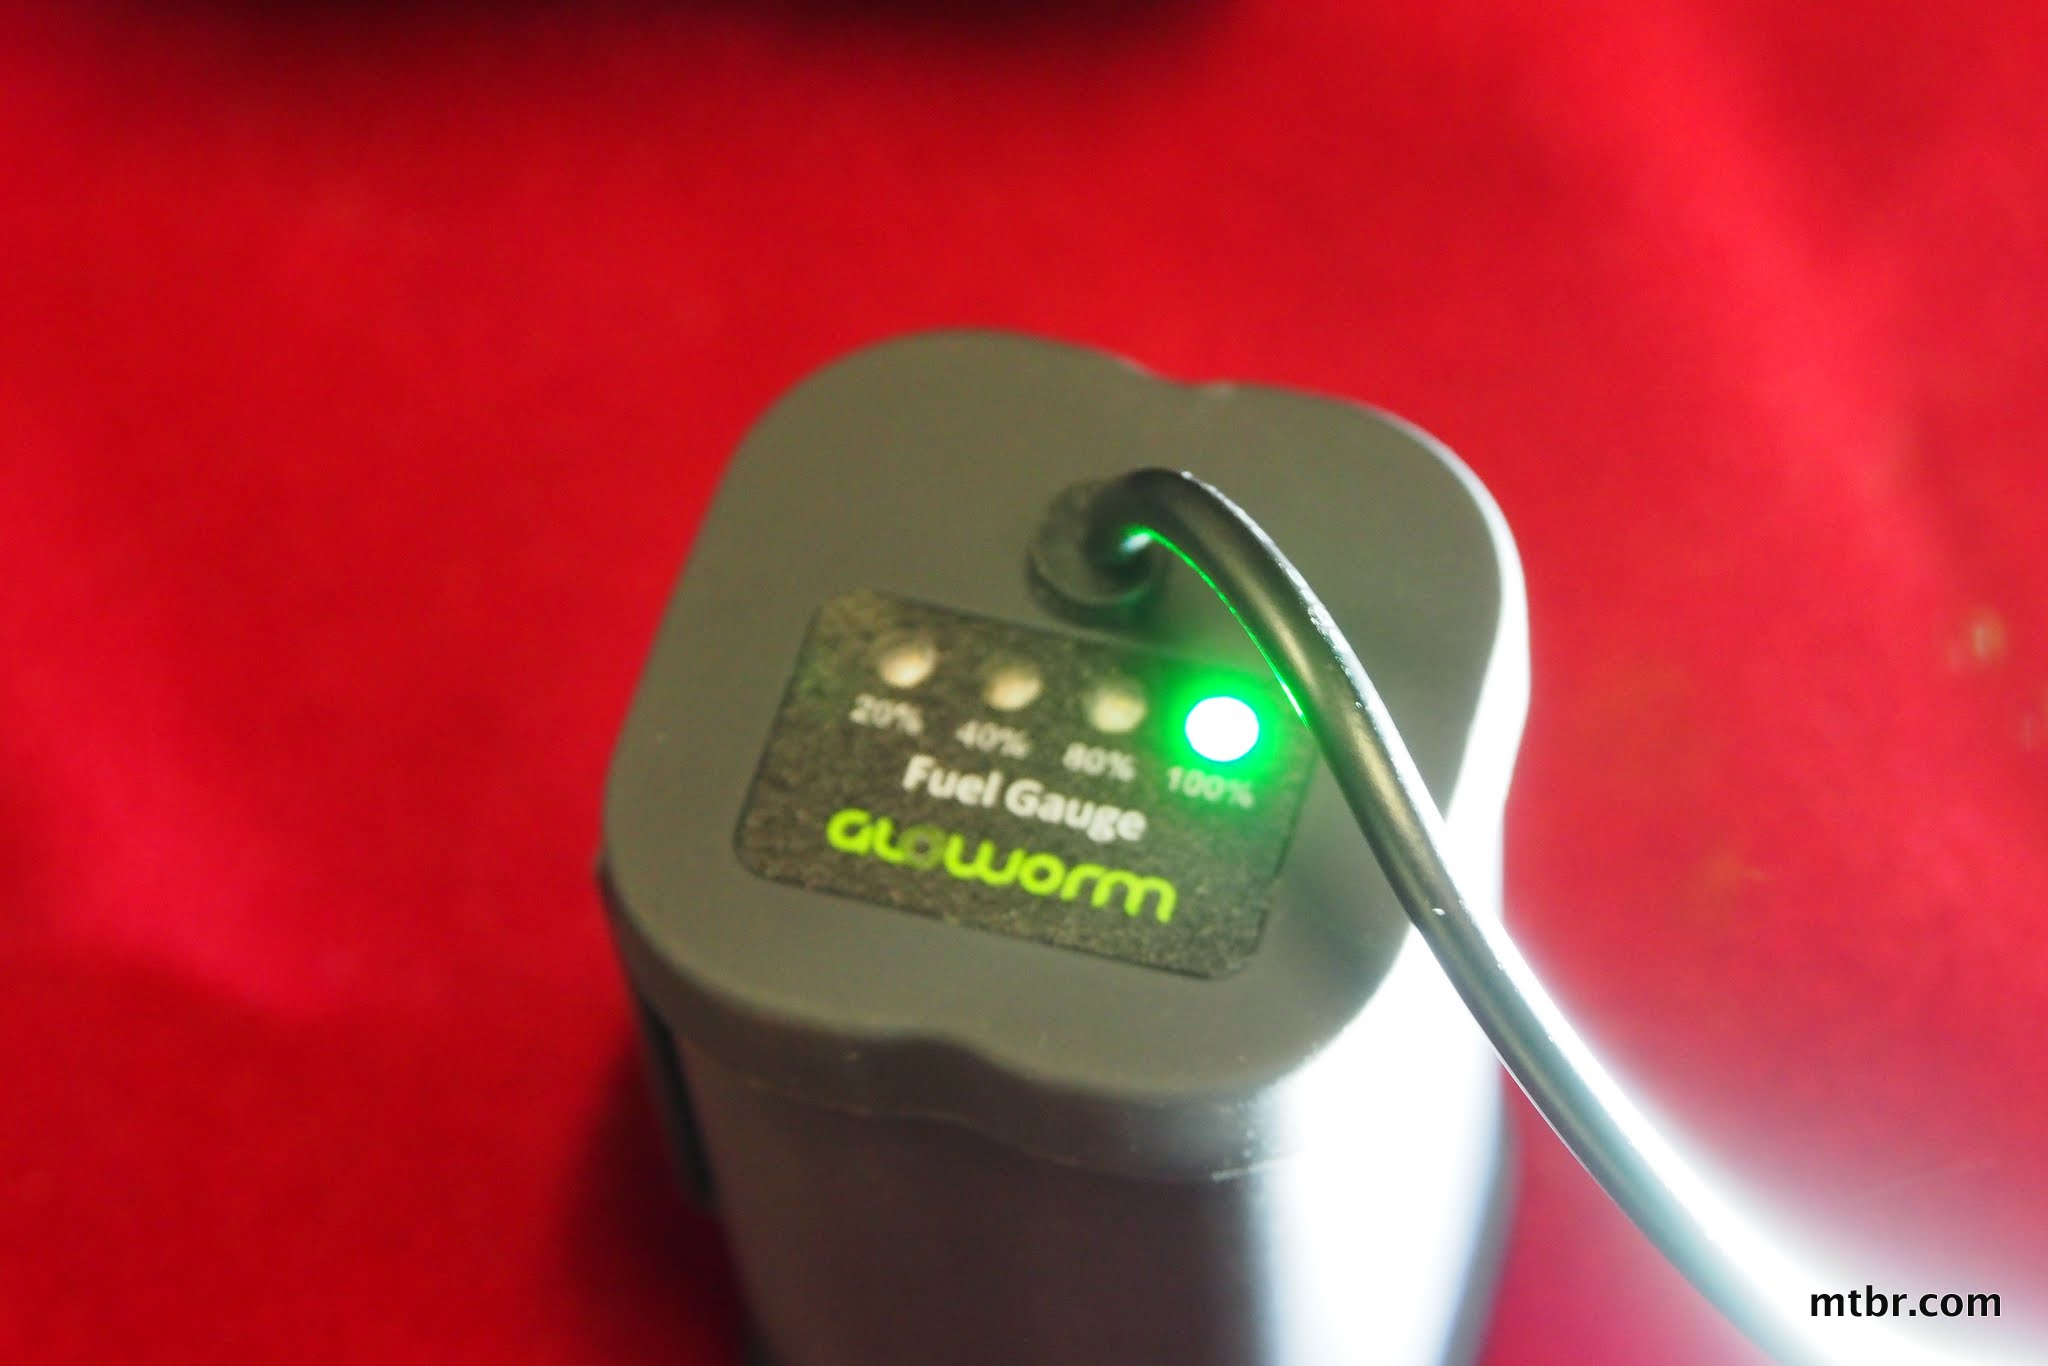 Gloworm X2 Battery